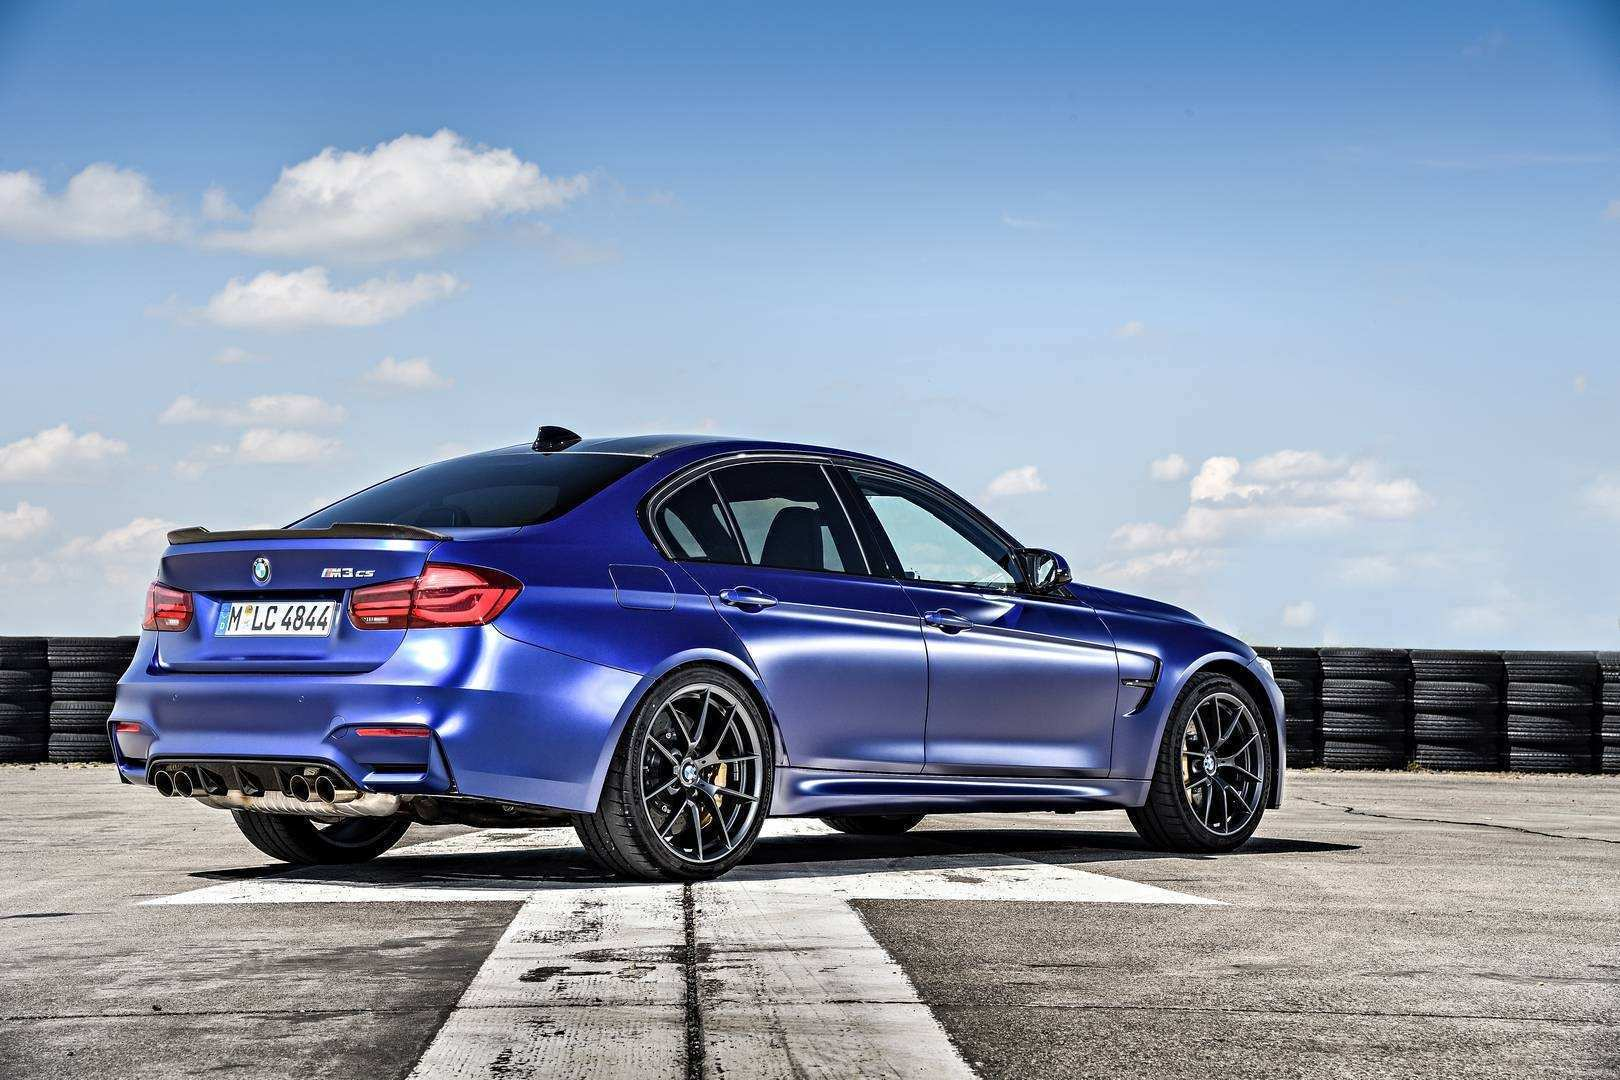 47 The Best 2019 BMW M3 Prices